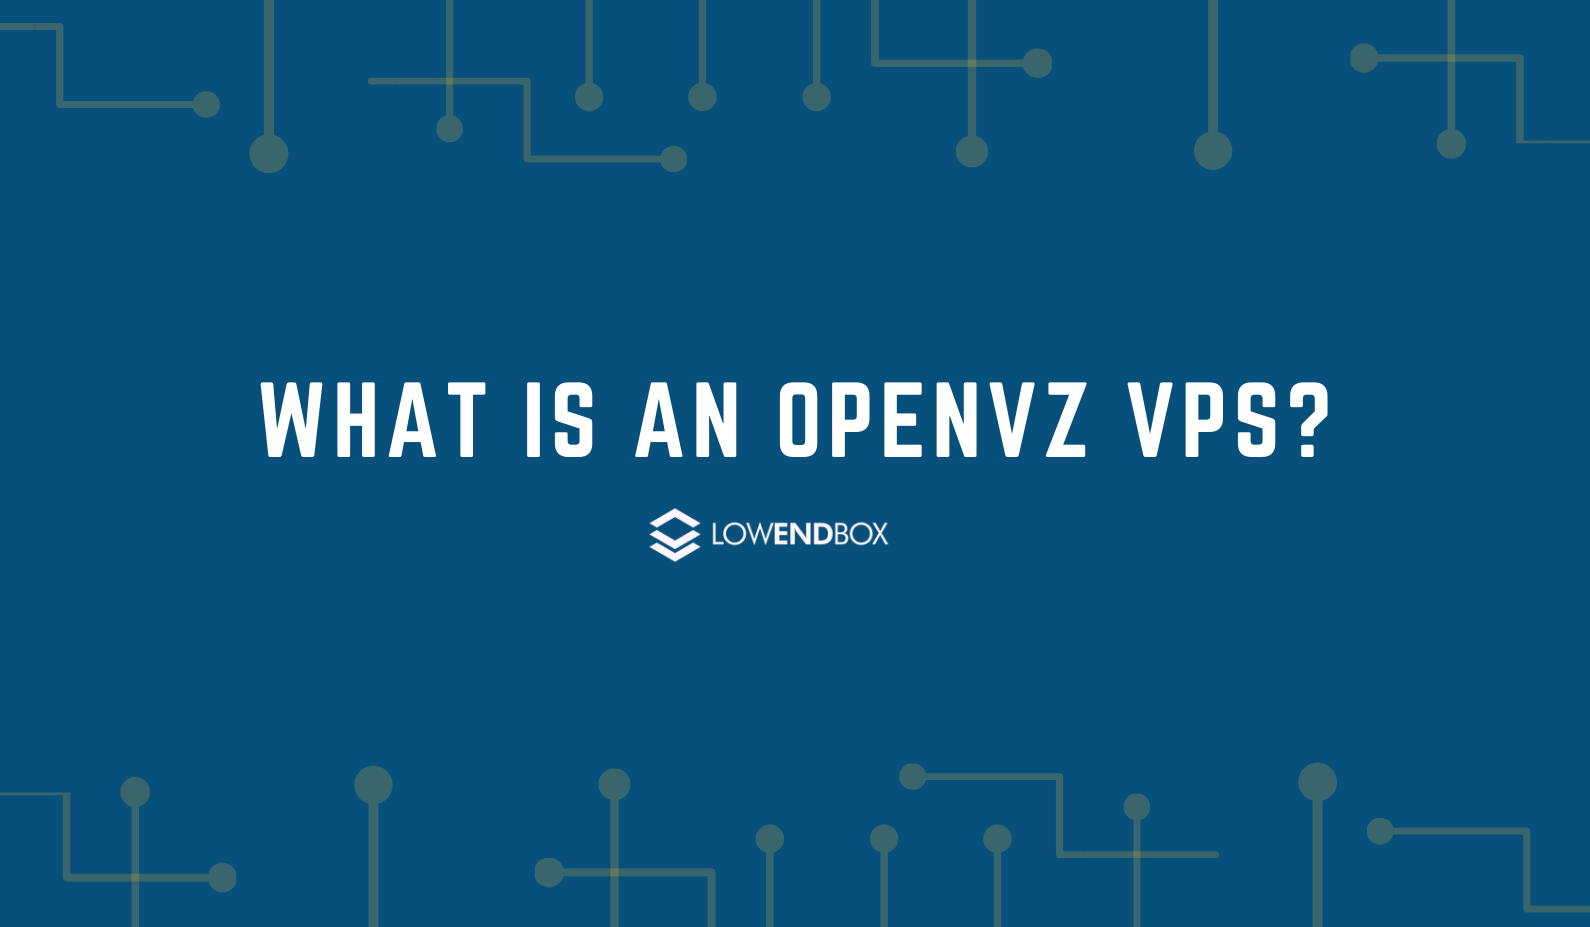 What is an OpenVZ VPS